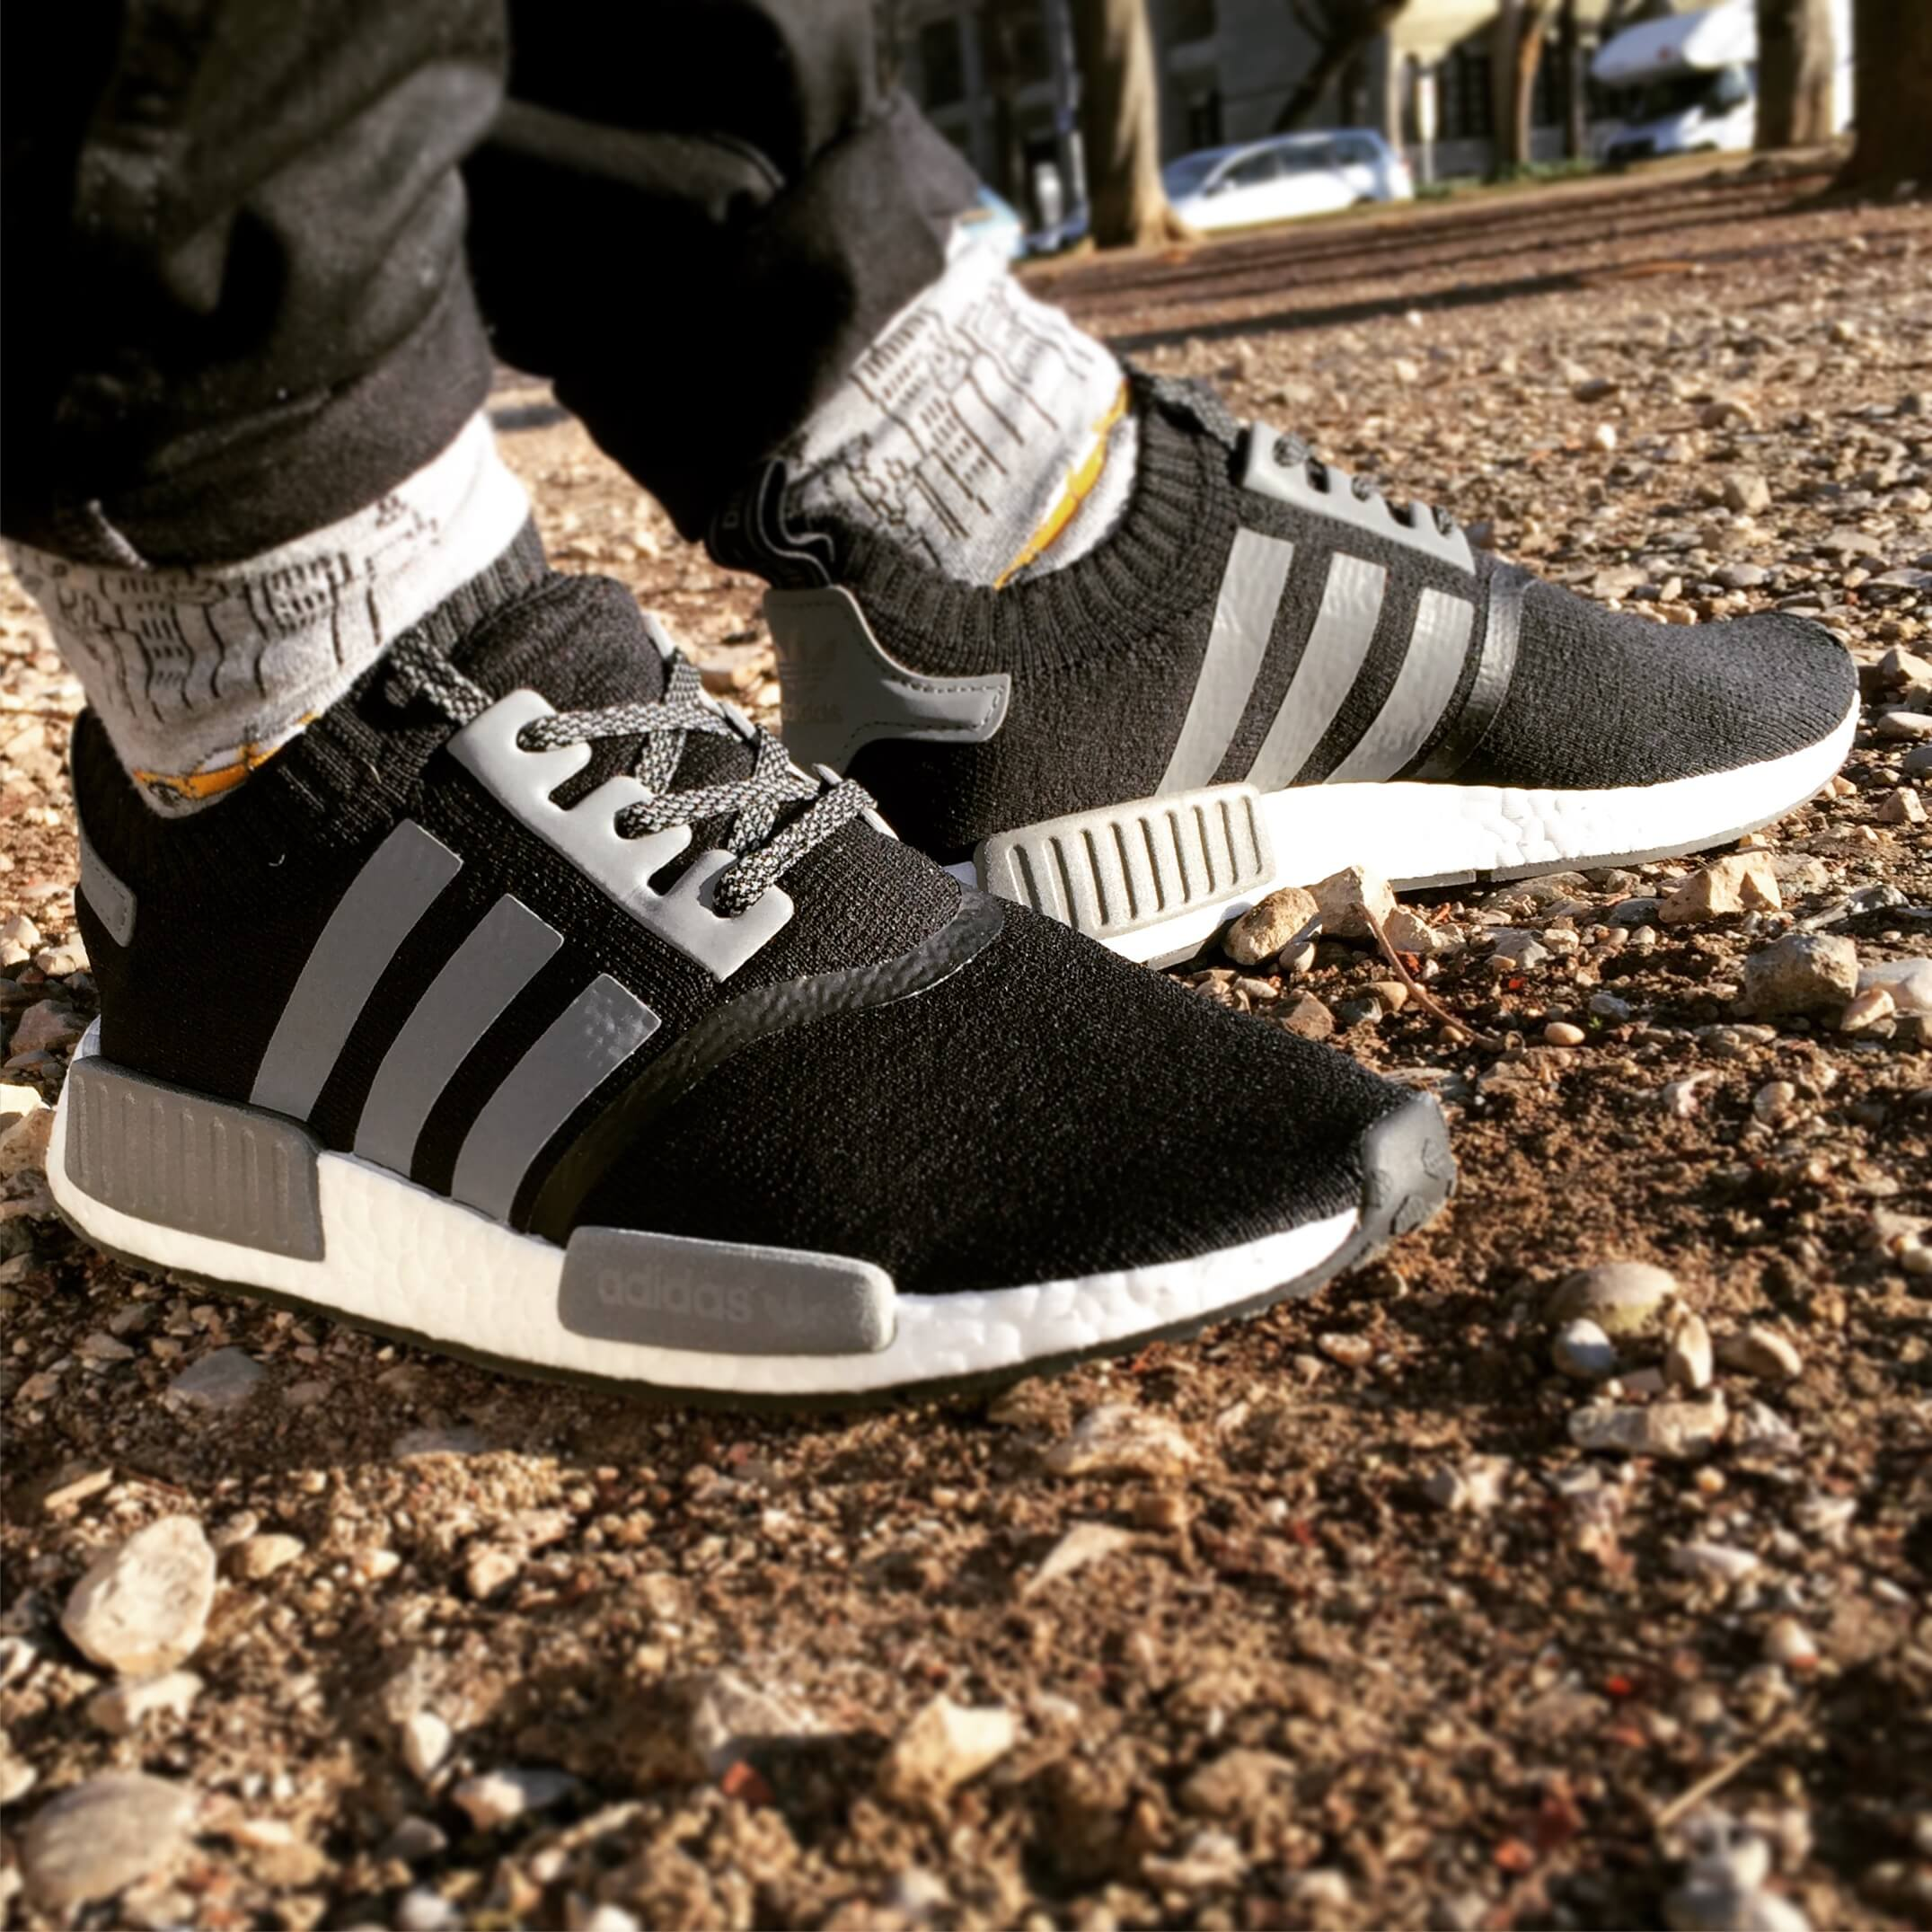 Adidas-NMD-Key-City-Activation-Side-View-Grey-Socks